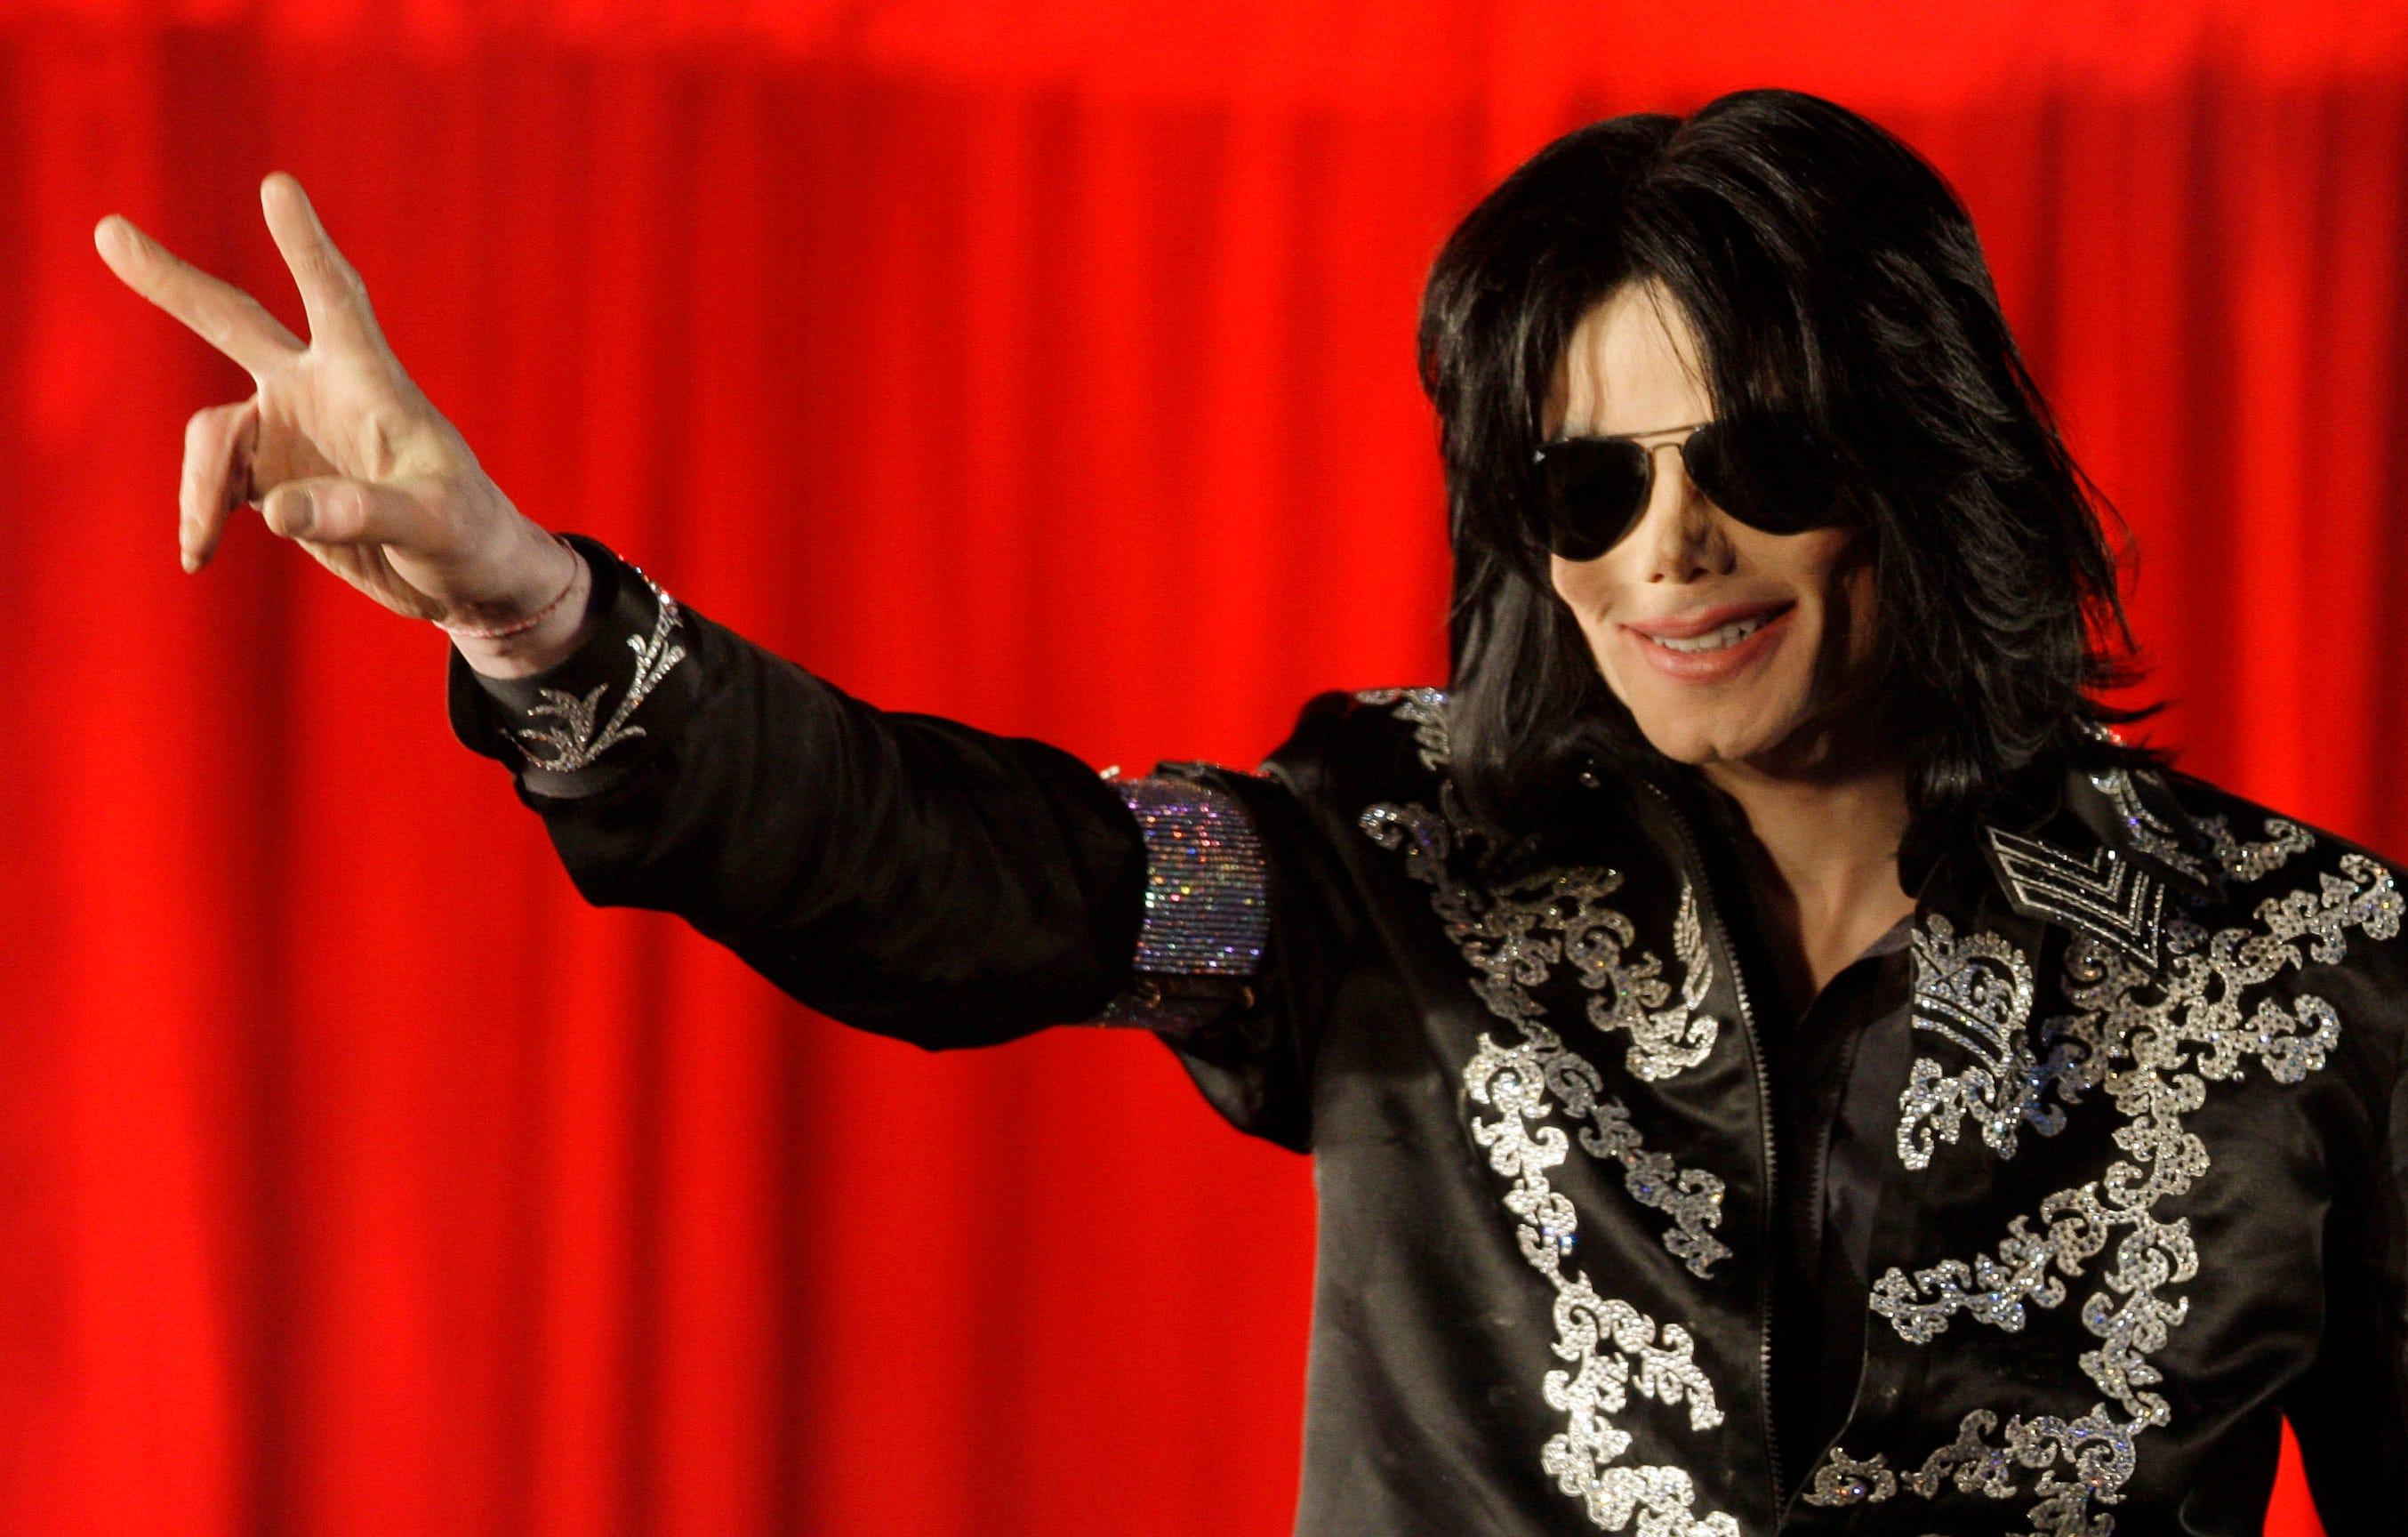 Discussion on this topic: Michael Jackson's doctor's surgery raided, michael-jacksons-doctors-surgery-raided/